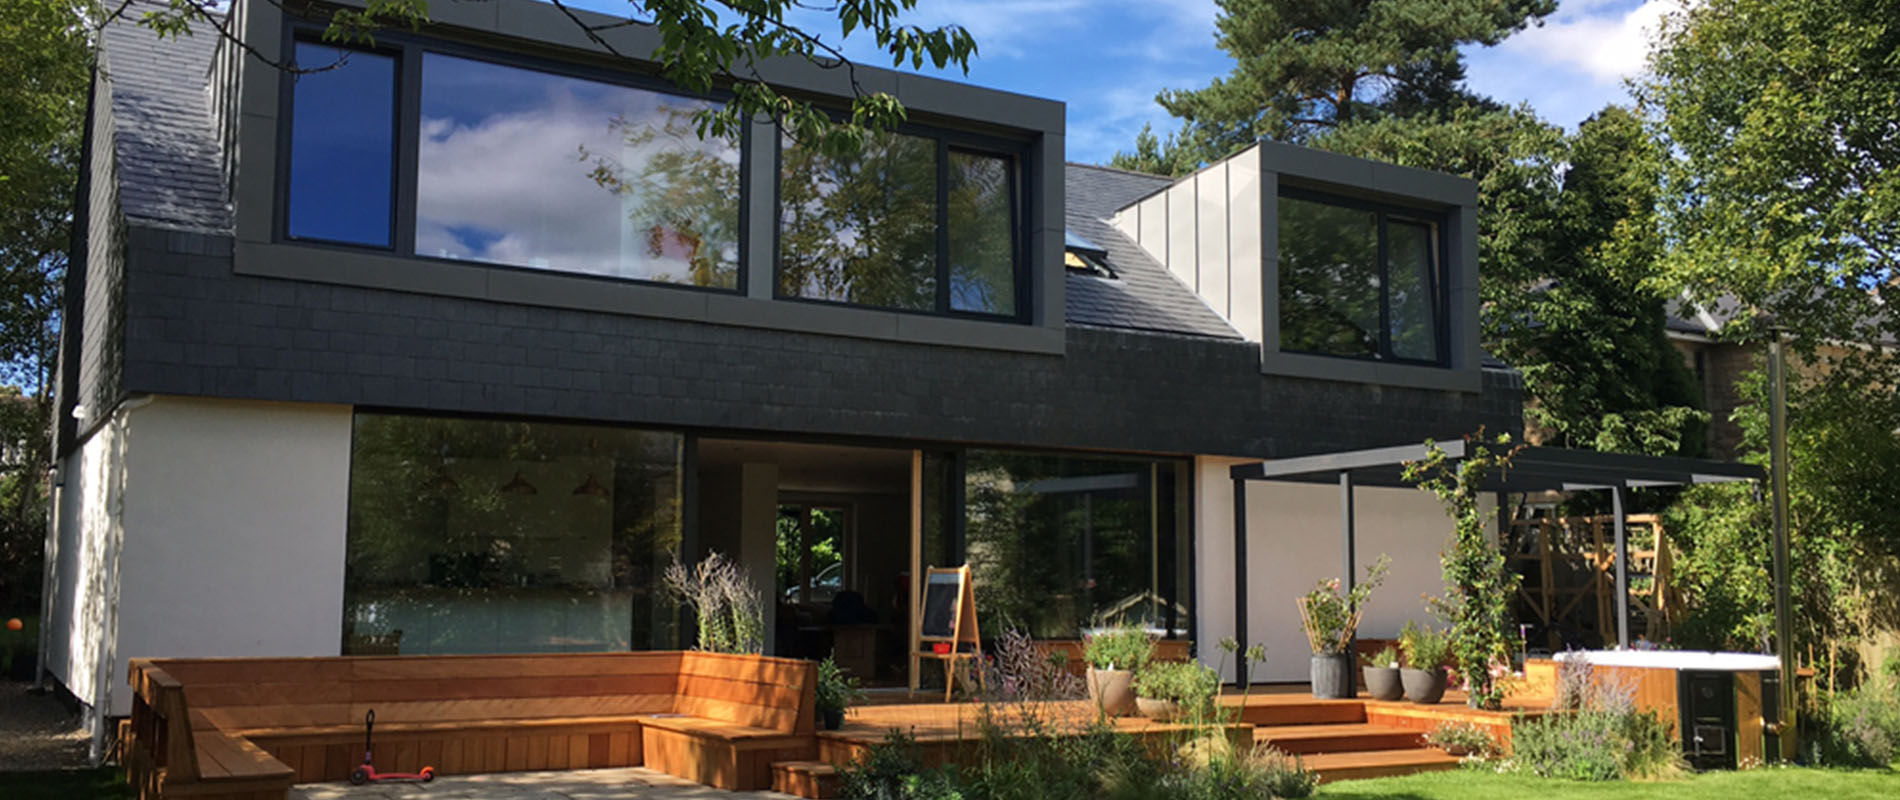 Mandioqueira creates seamless transition for indoor ... on Seamless Indoor Outdoor Living id=15469